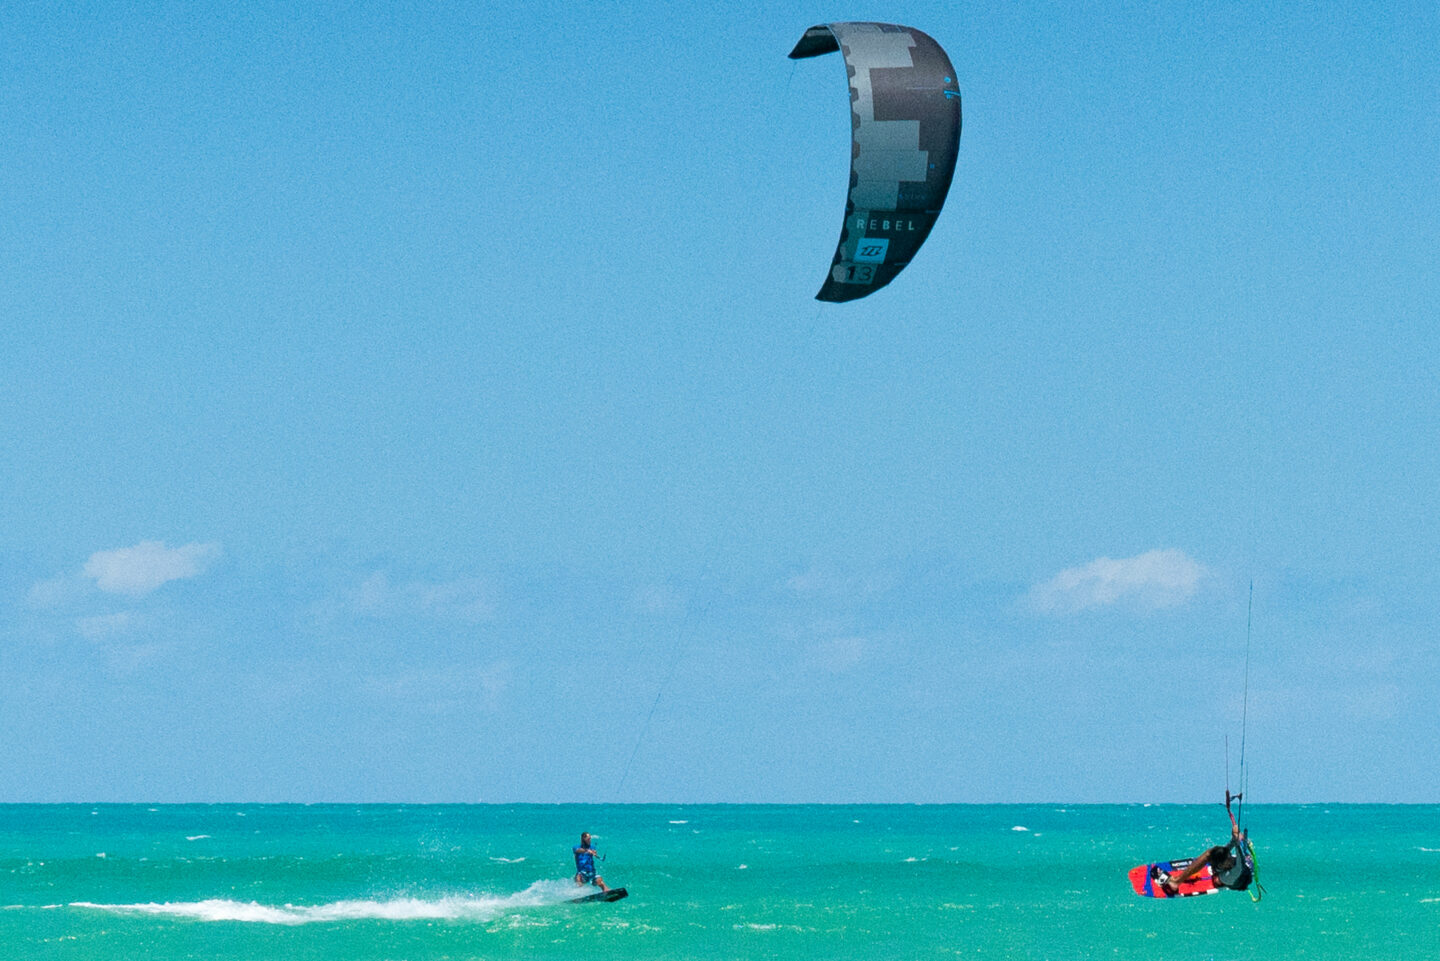 Kite Surfing in El Cuyo. El Cuyo is one of the best places to learn kiteboarding due to the shallow waters.